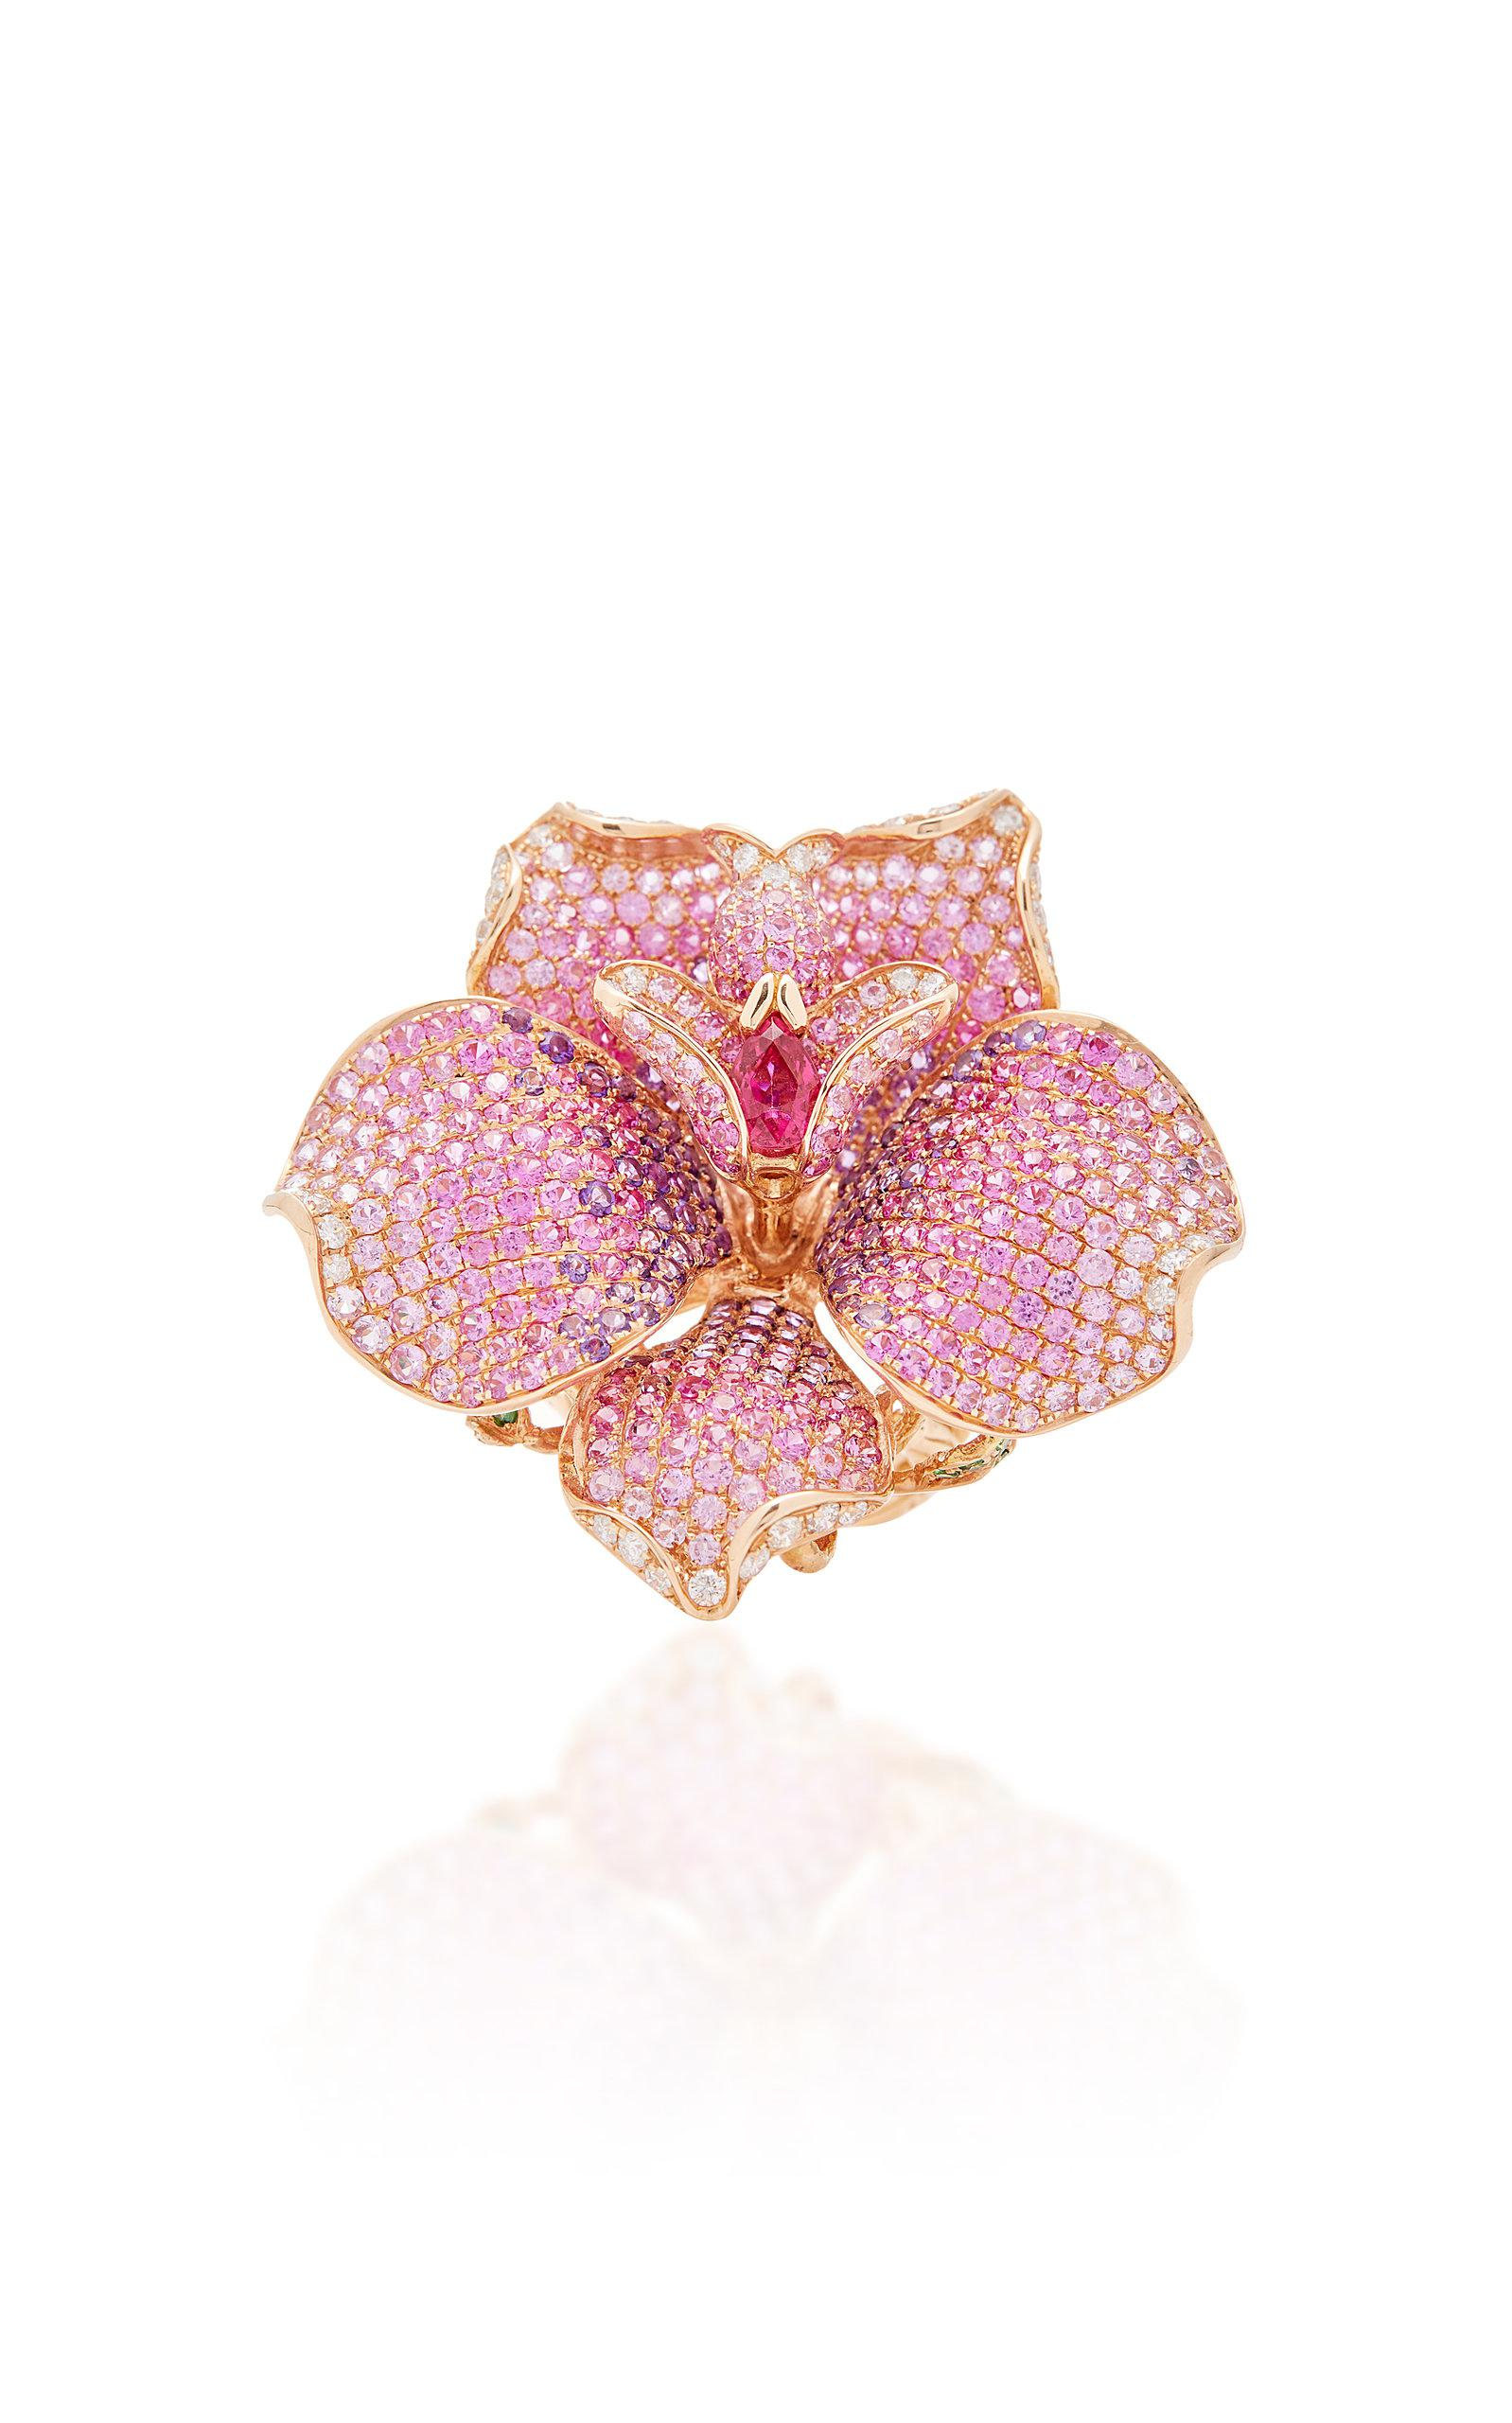 Lyst Wendy Yue Sapphire Flower Ring In Pink